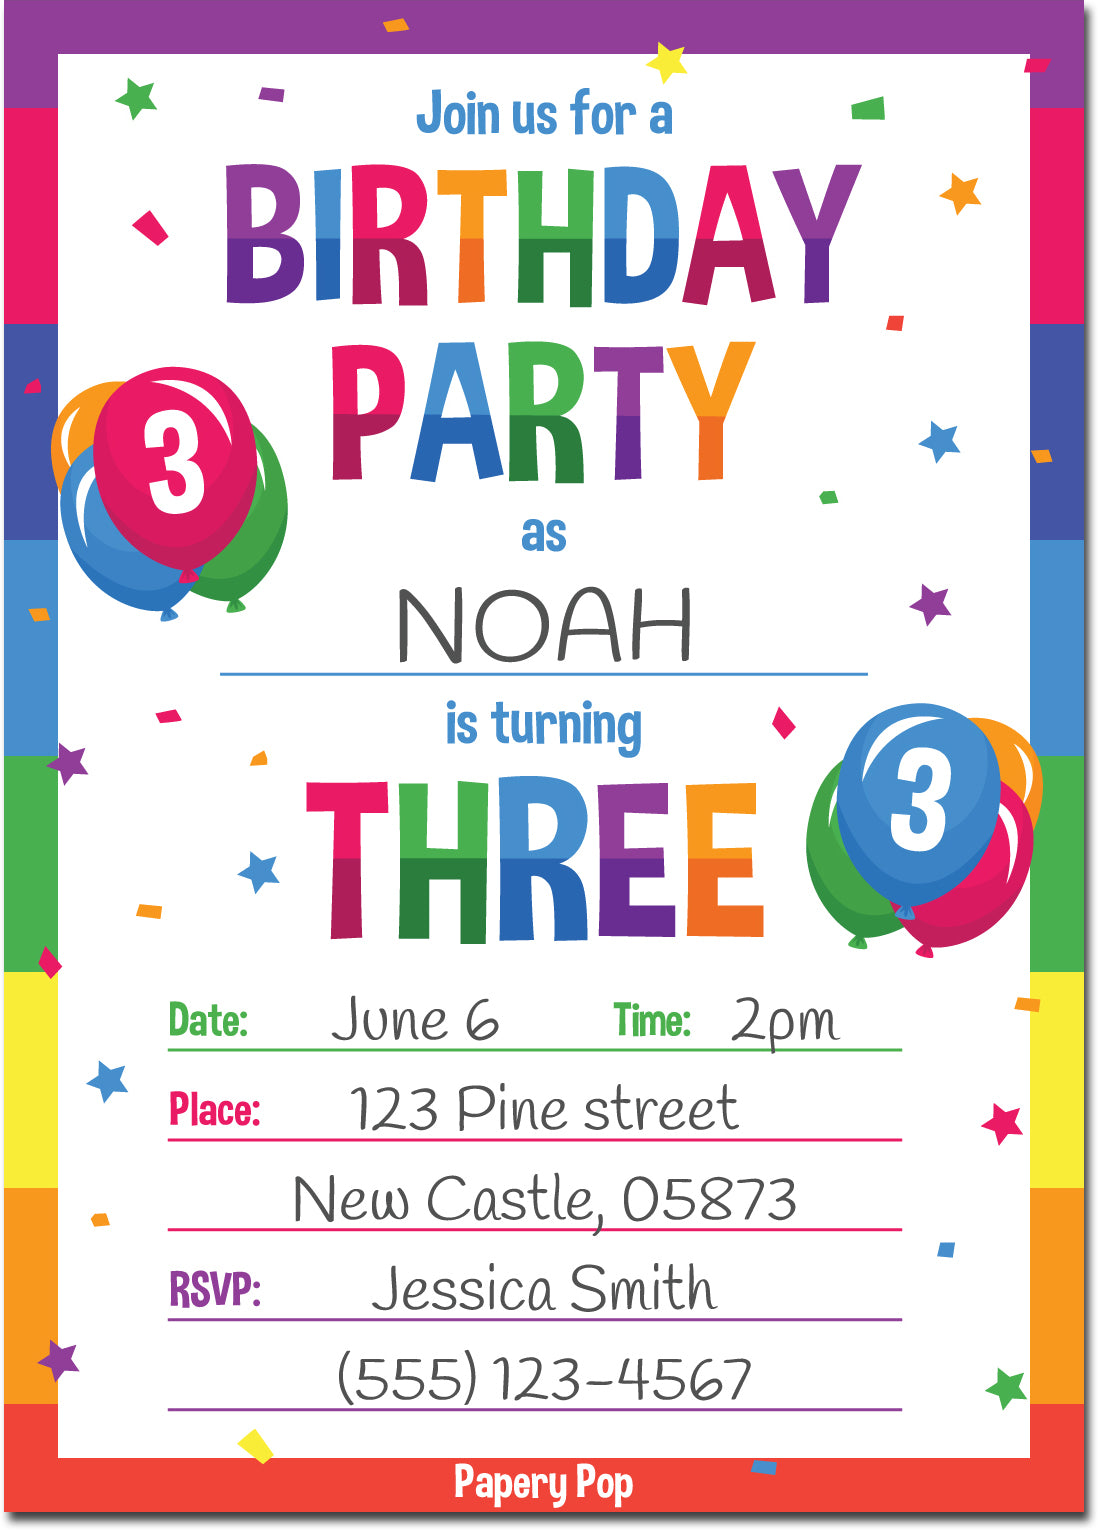 3 year old birthday party invitations with envelopes 15 count 3 year old birthday party invitations with envelopes 15 count kids birthday invitations stopboris Choice Image